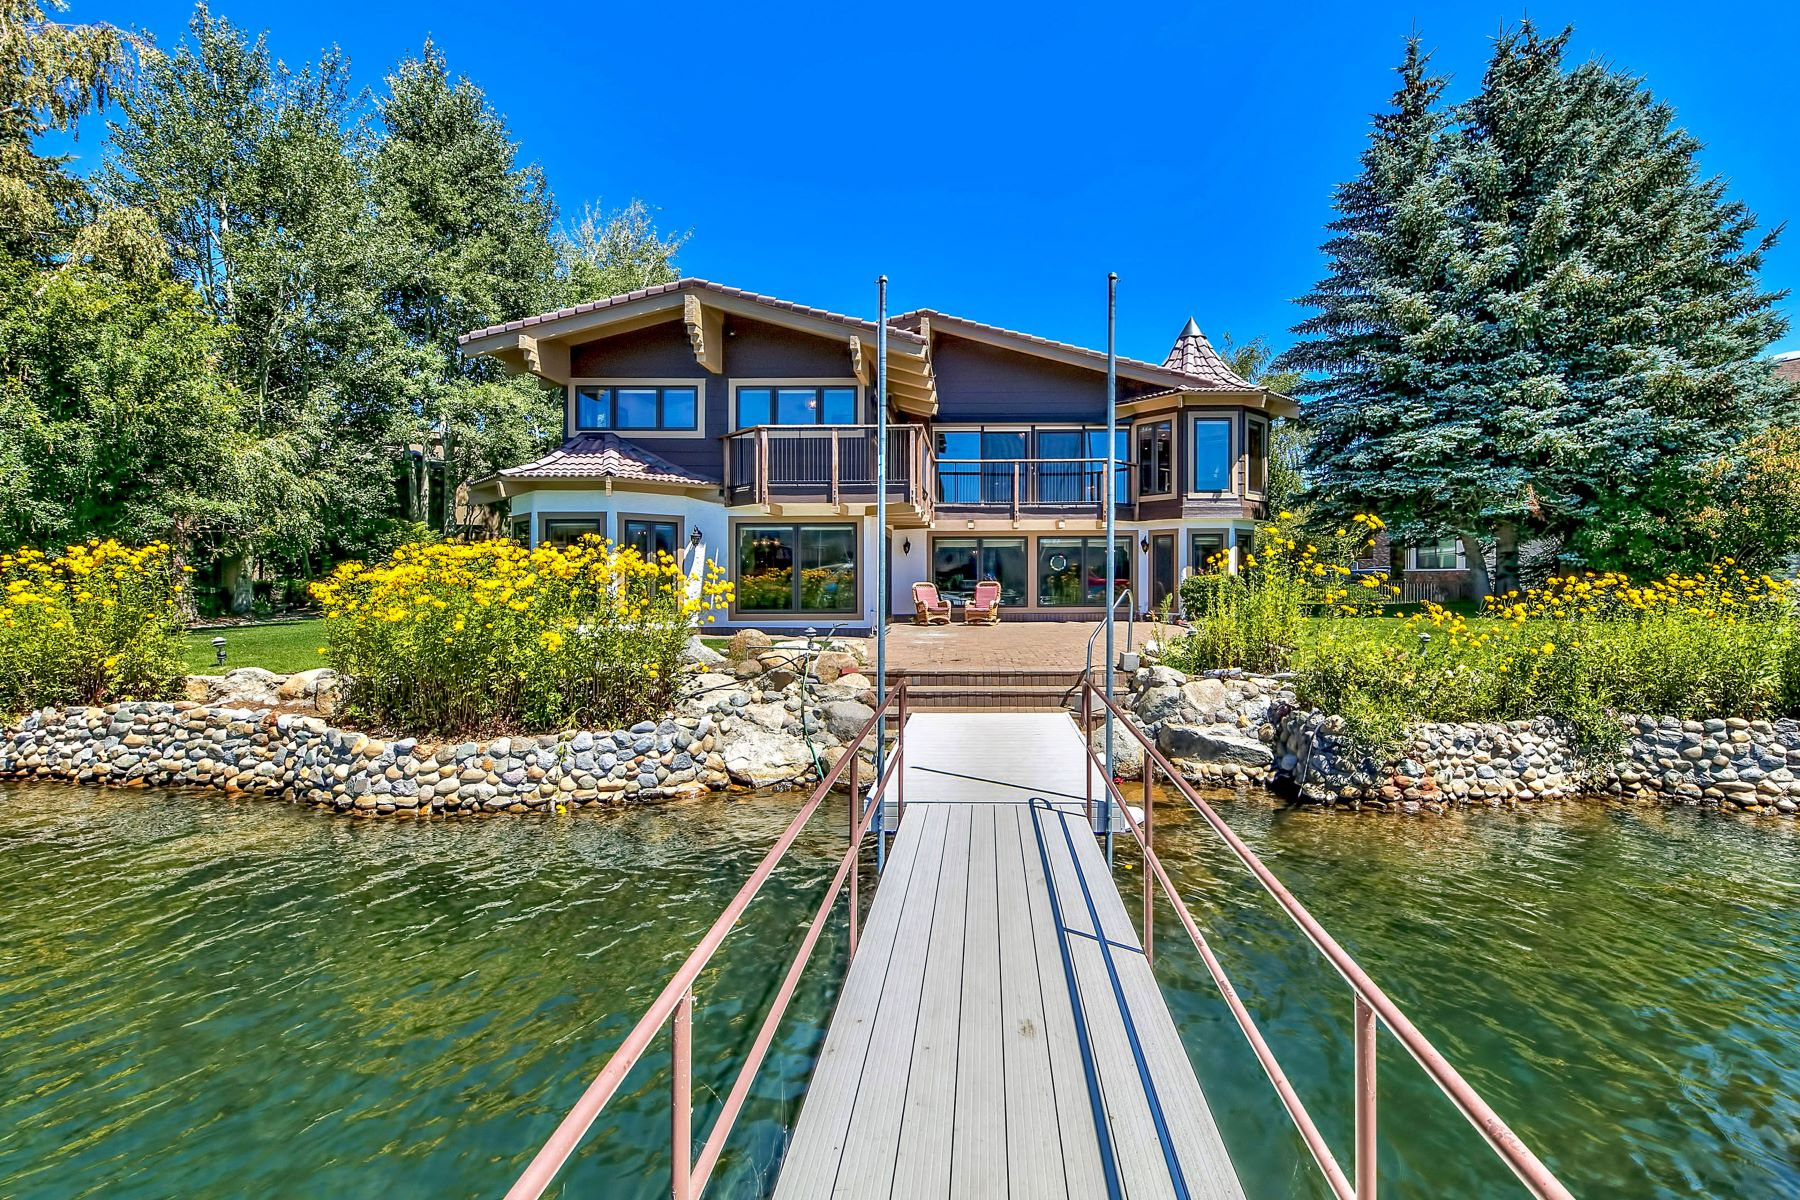 Single Family Homes for Active at 2144 White Sands Drive, South Lake Tahoe, CA 96150 2144 White Sands Drive South Lake Tahoe, California 96150 United States